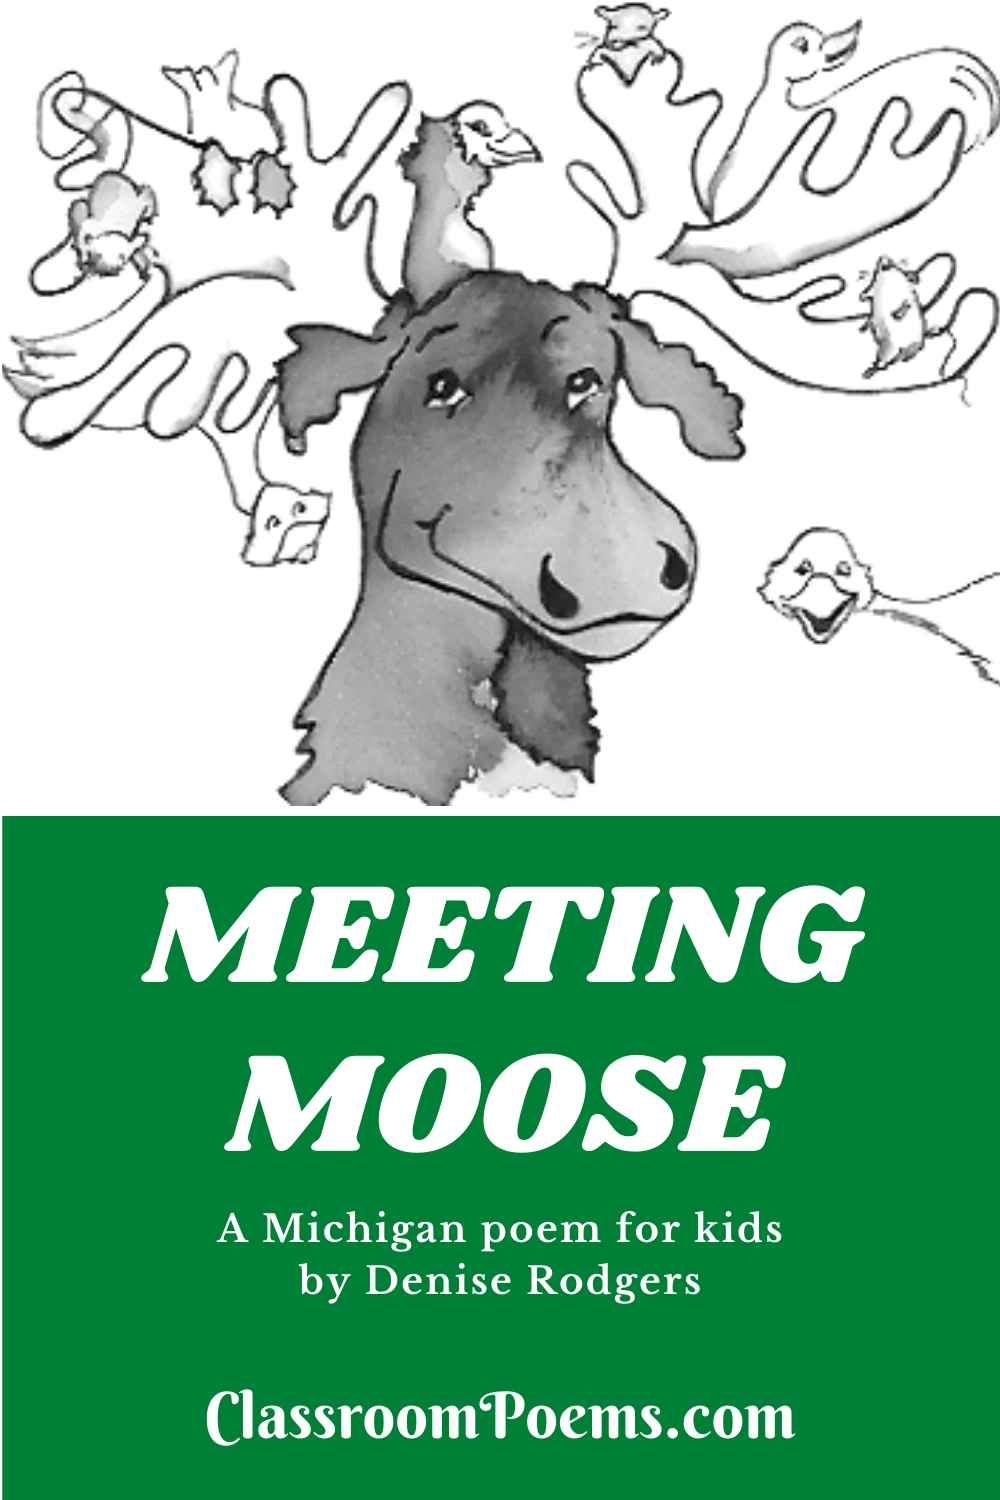 Moose drawing and poem by Denise Rodgers of ClassroomPoems.com.